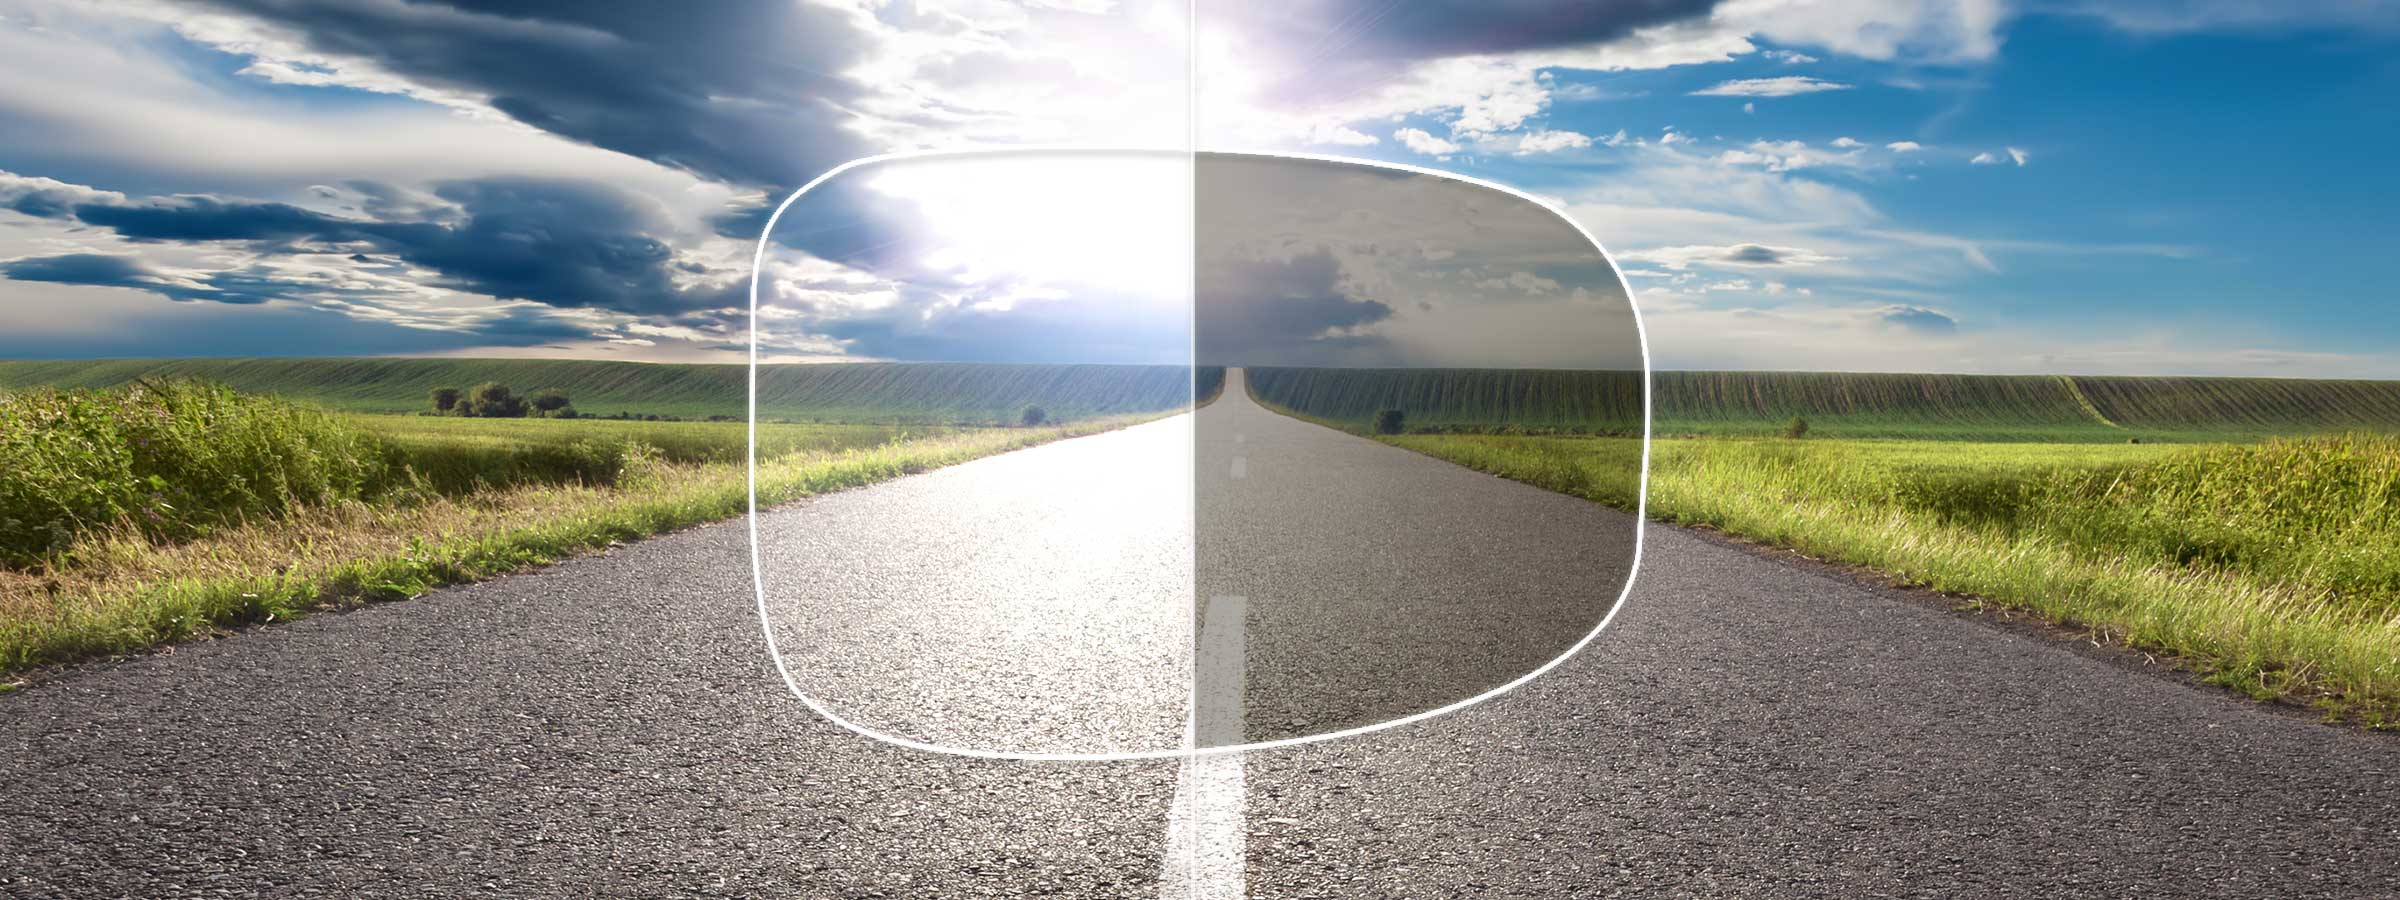 View of a country road through a lens with and without a polarised tint